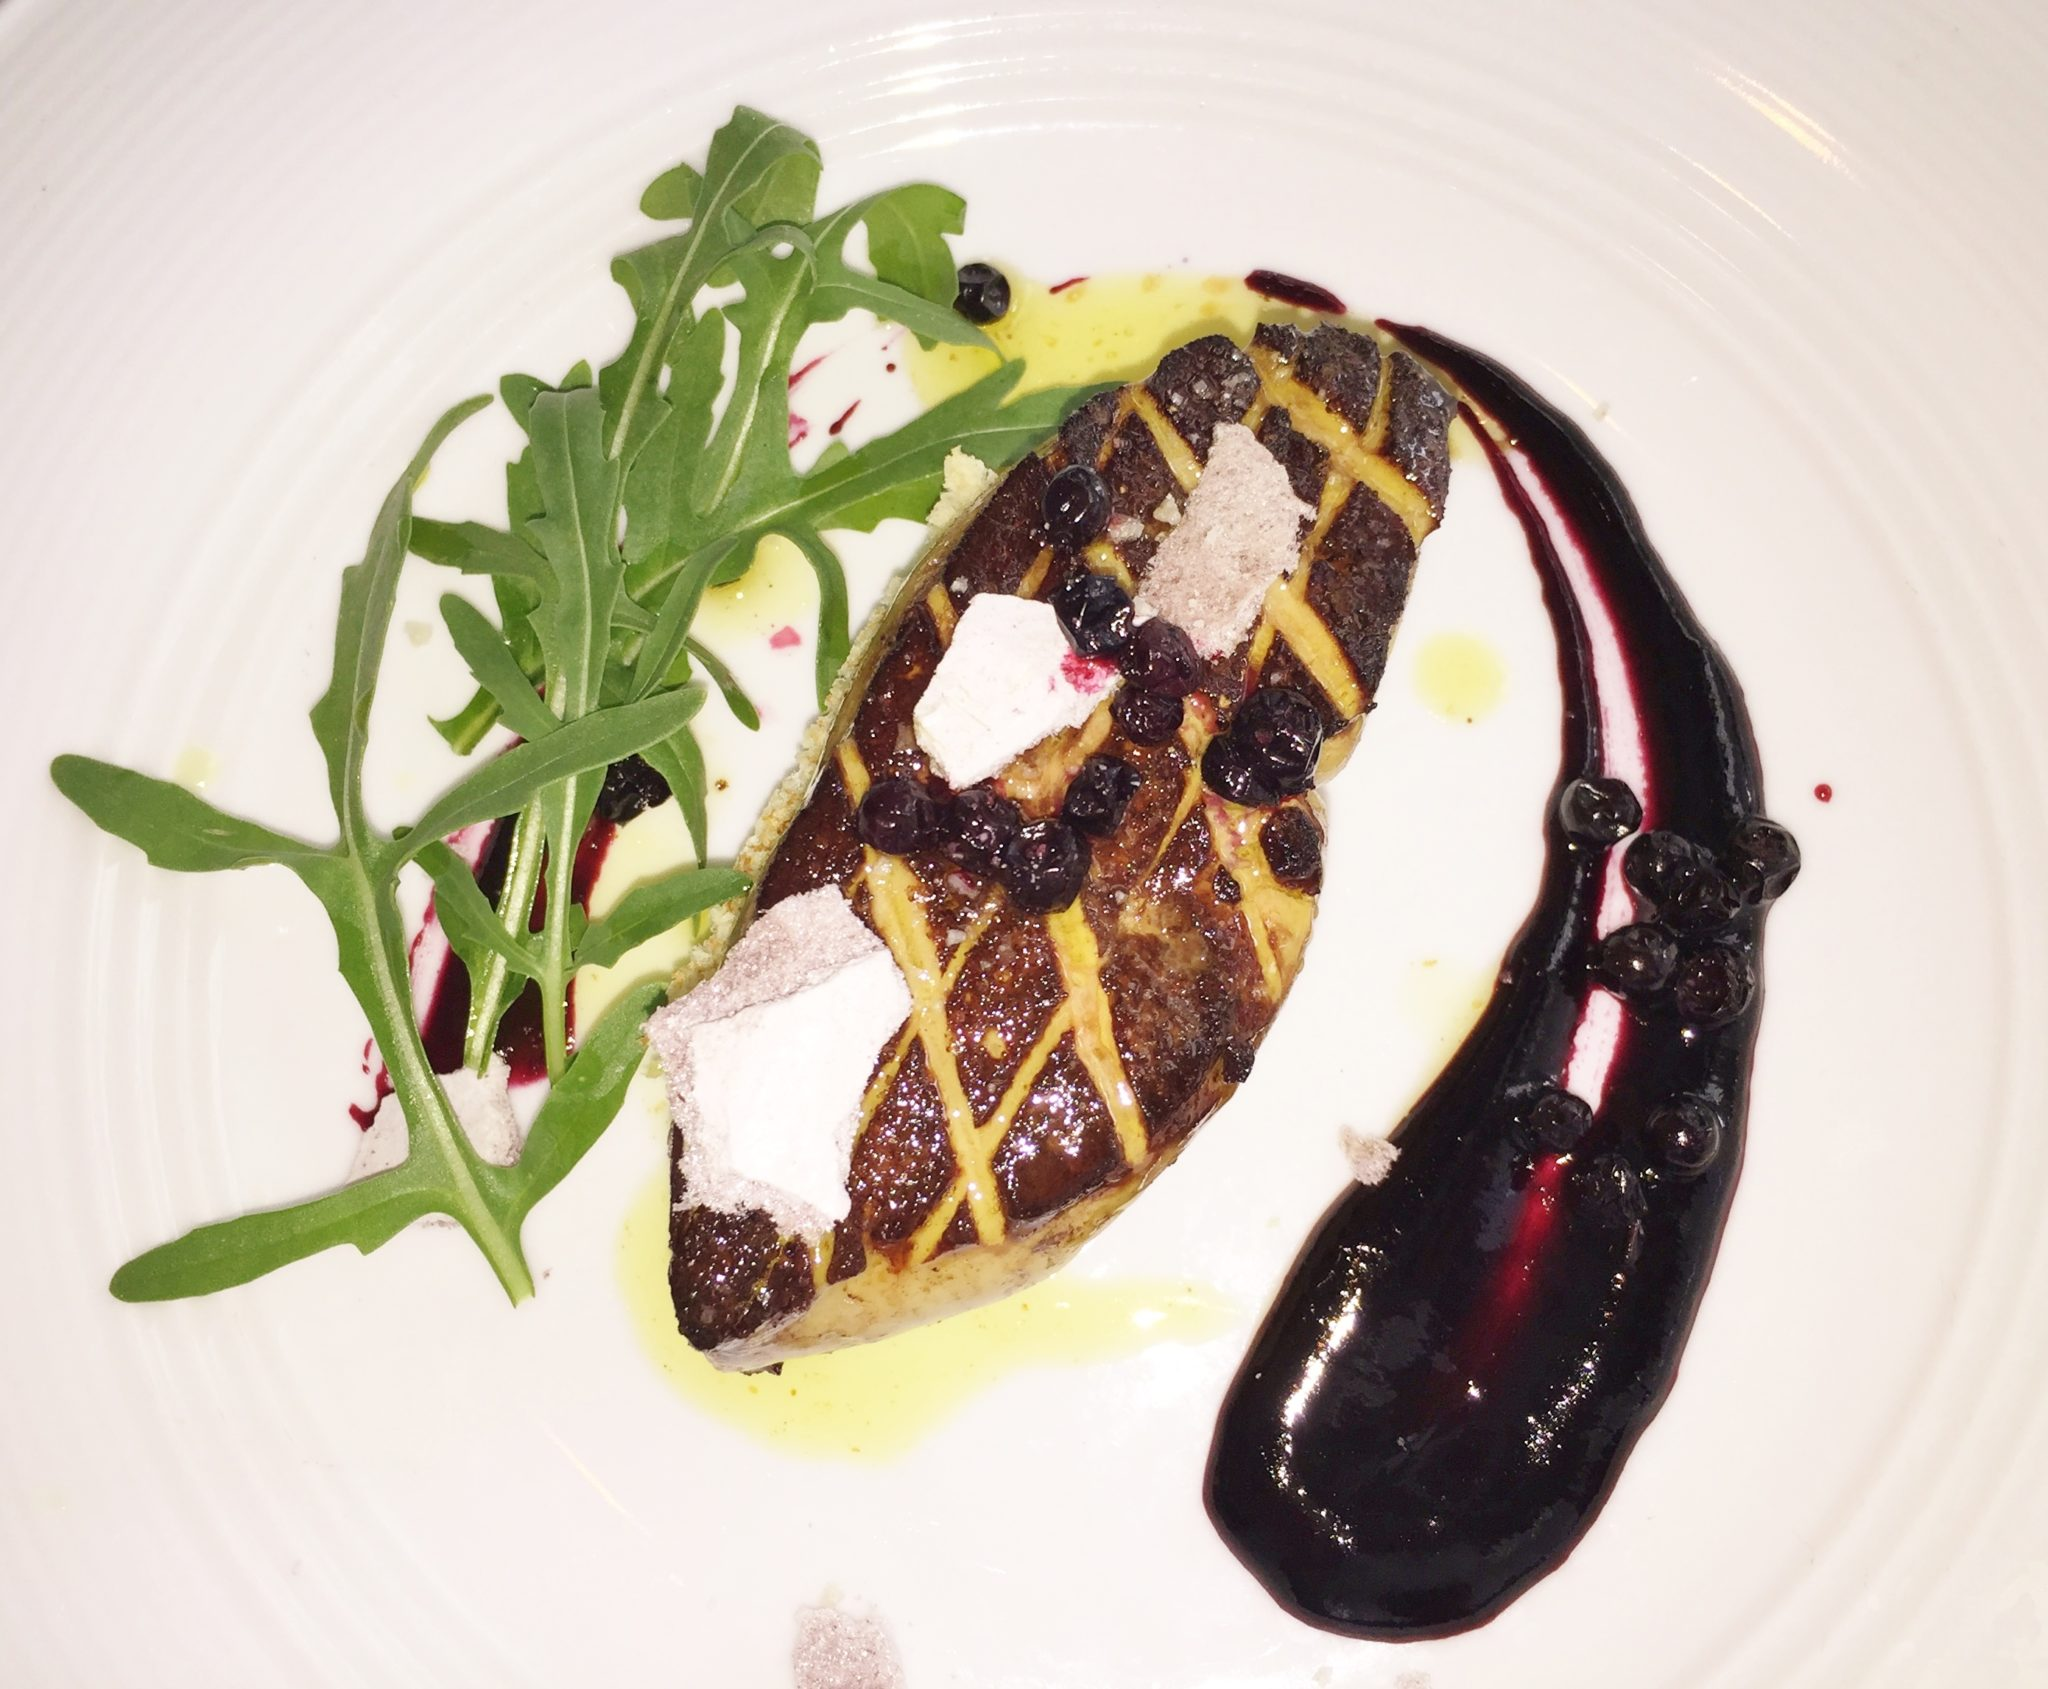 Andiron Steak & Sea Restaurant Review Summerlin Las Vegas…. Andiron is a brand new eatery in Summerlin brought to you by Chef Joe Zanelli, formally of […]